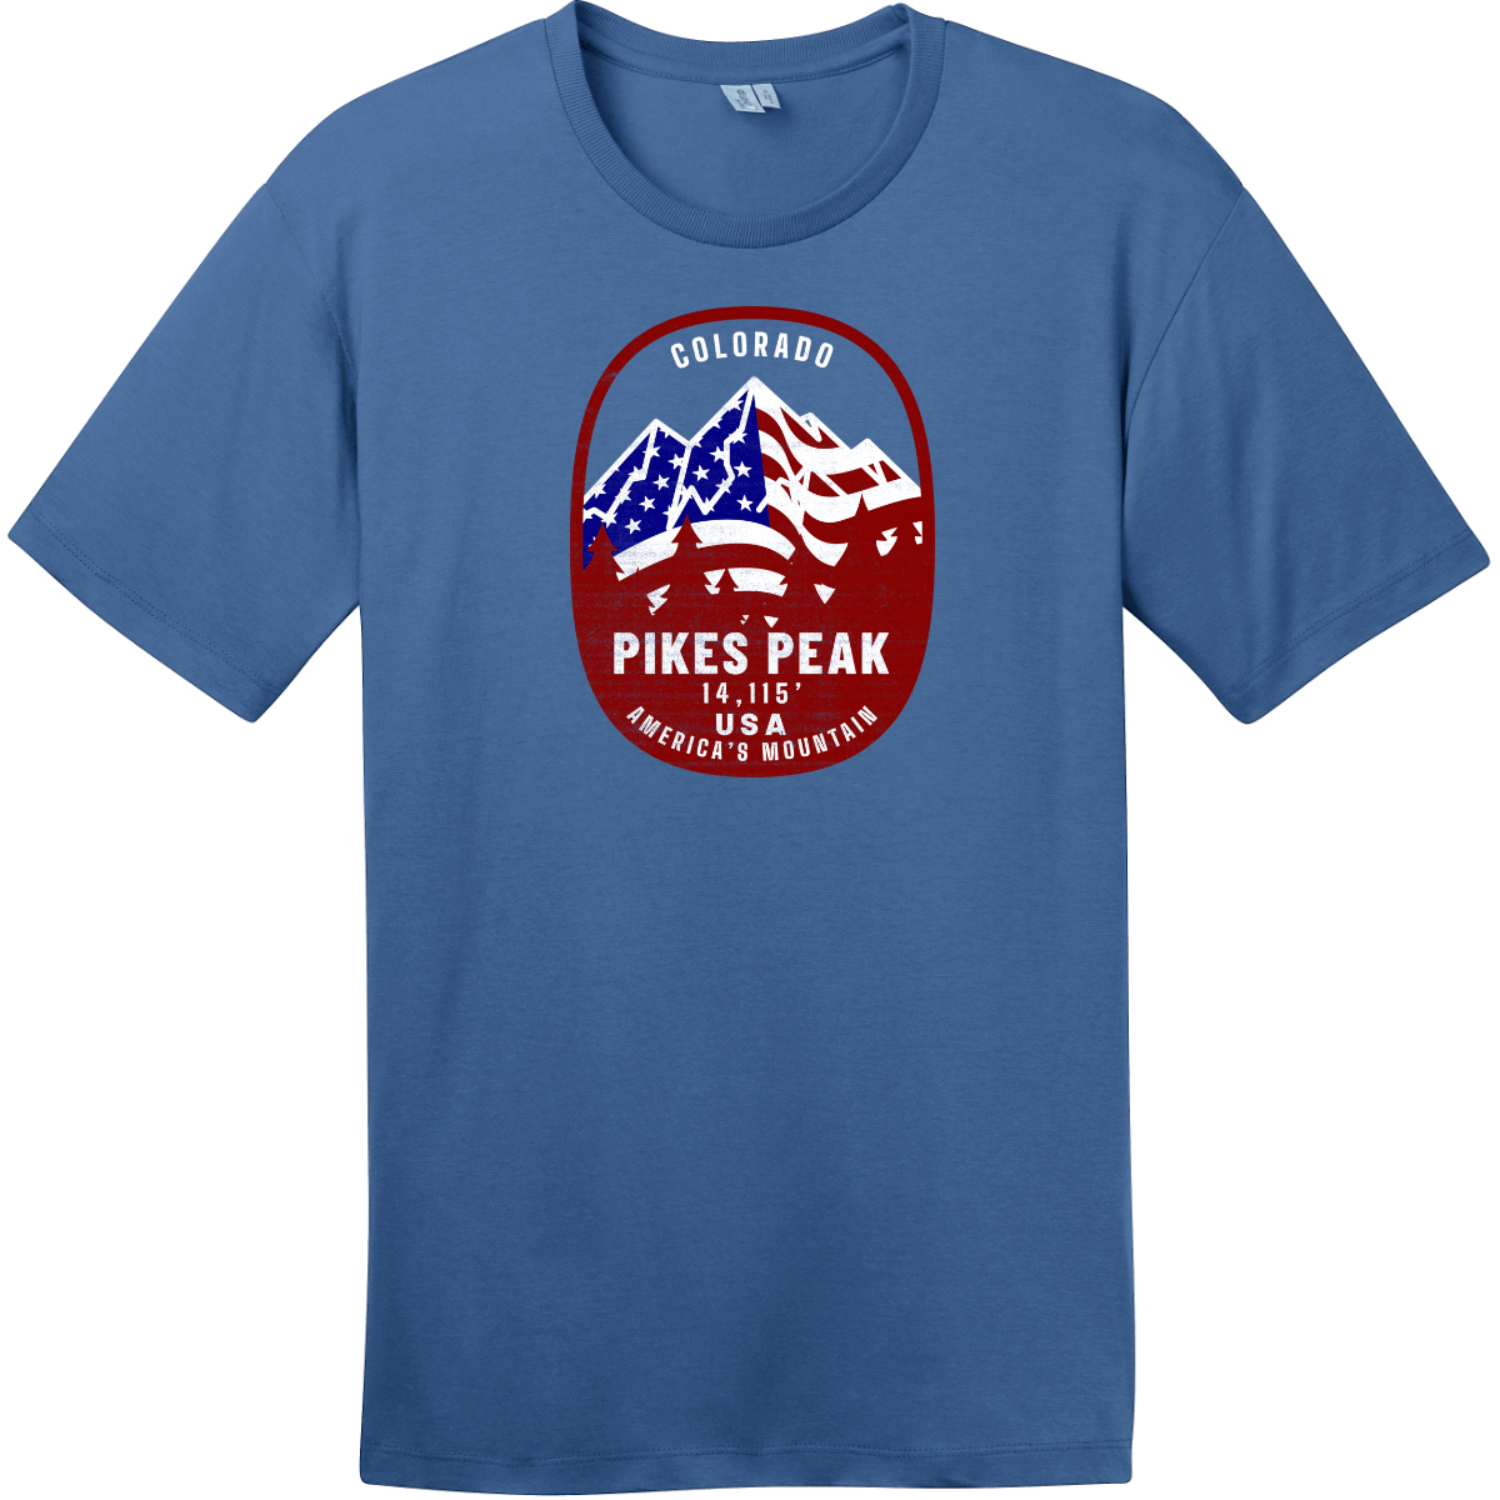 Pikes Peak Americas Mountain T-Shirt Maritime Blue District Perfect Weight Tee DT104